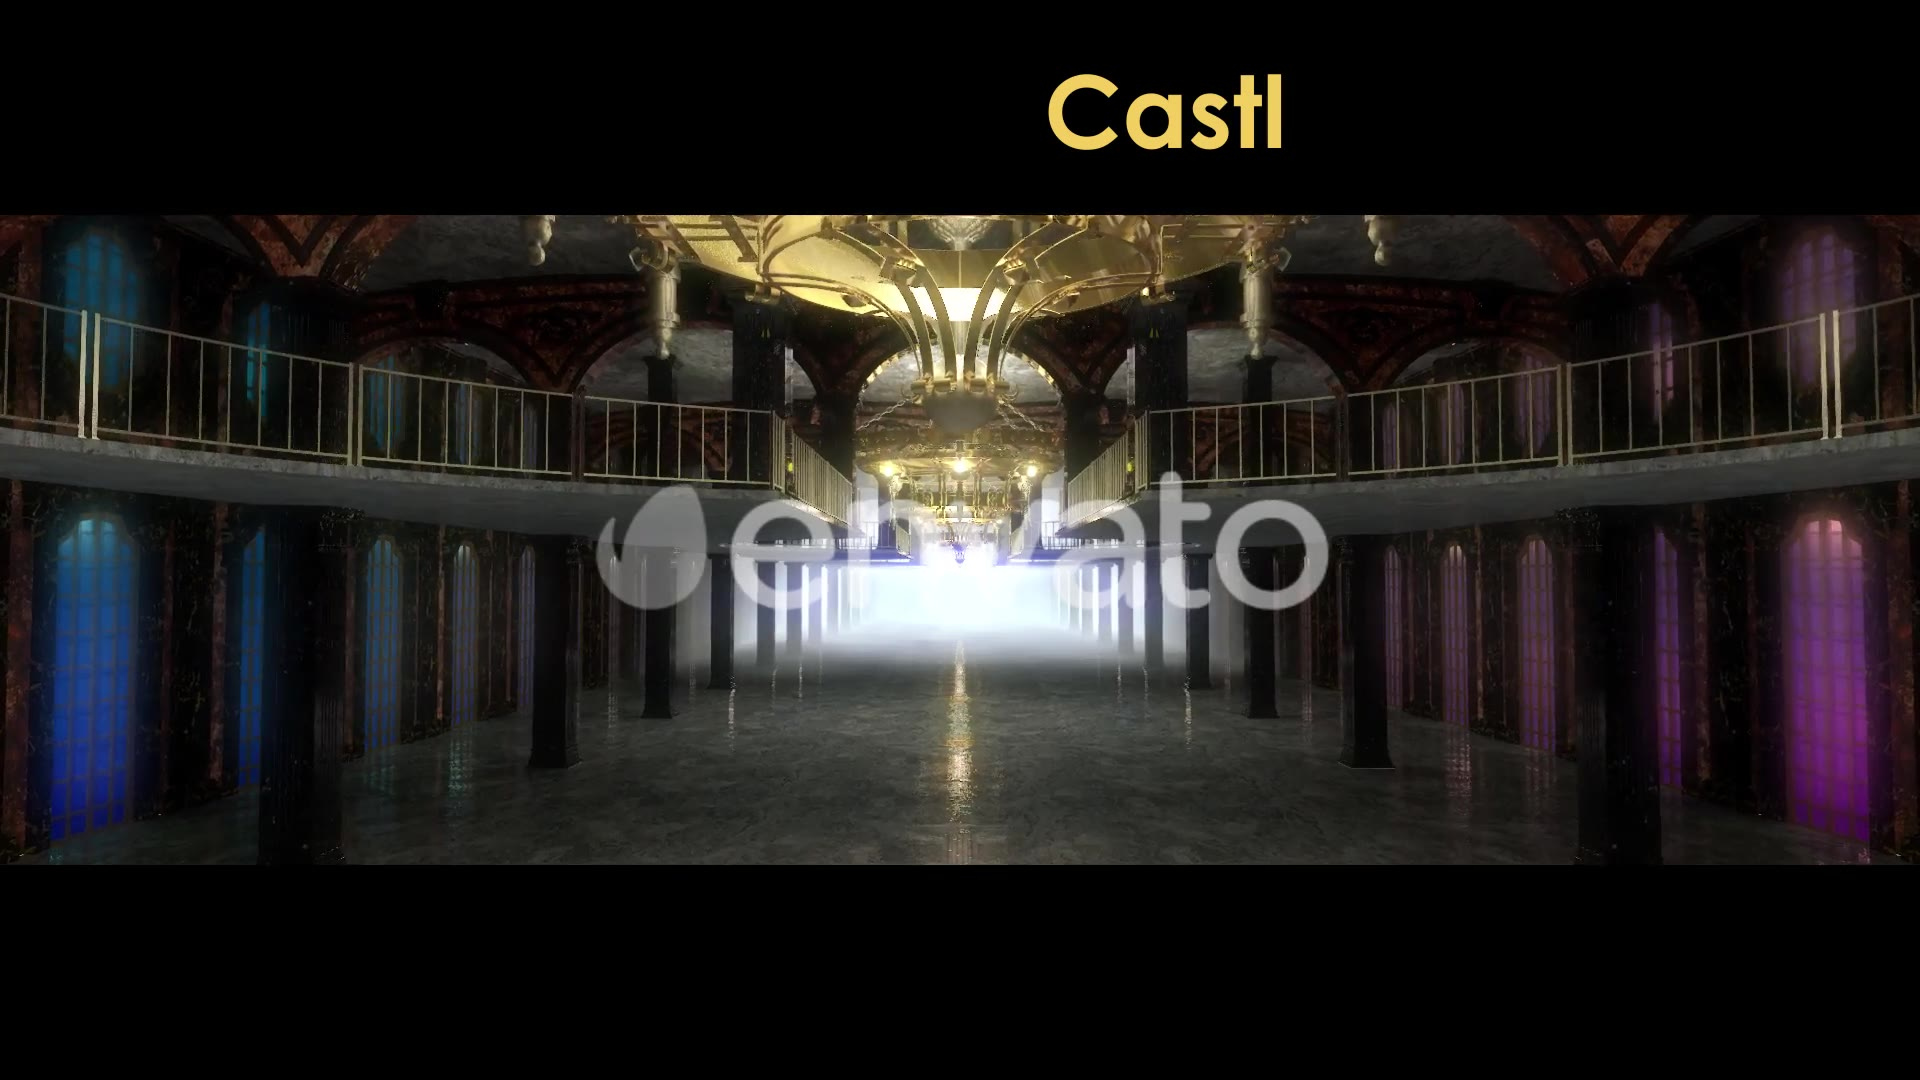 Castle Interior Videohive 22120312 Motion Graphics Image 3